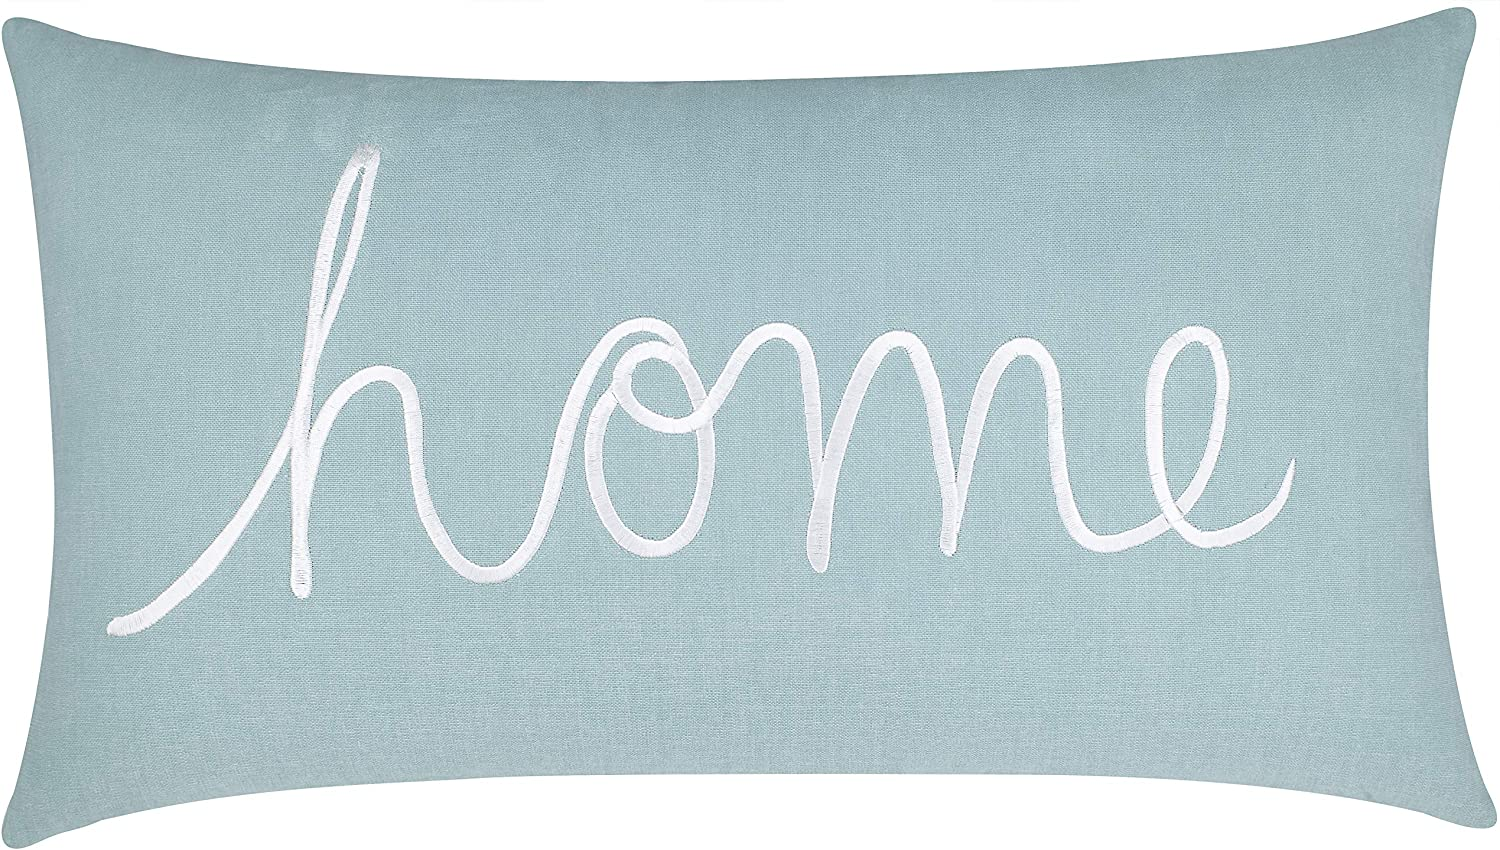 """EURASIA DECOR Home Sentiment Embroidered Decorative Lumbar Accent Throw Pillow Cover for Bedroom Couch Housewarming Porch Sofa 14""""x24"""" (Sea Blue)"""